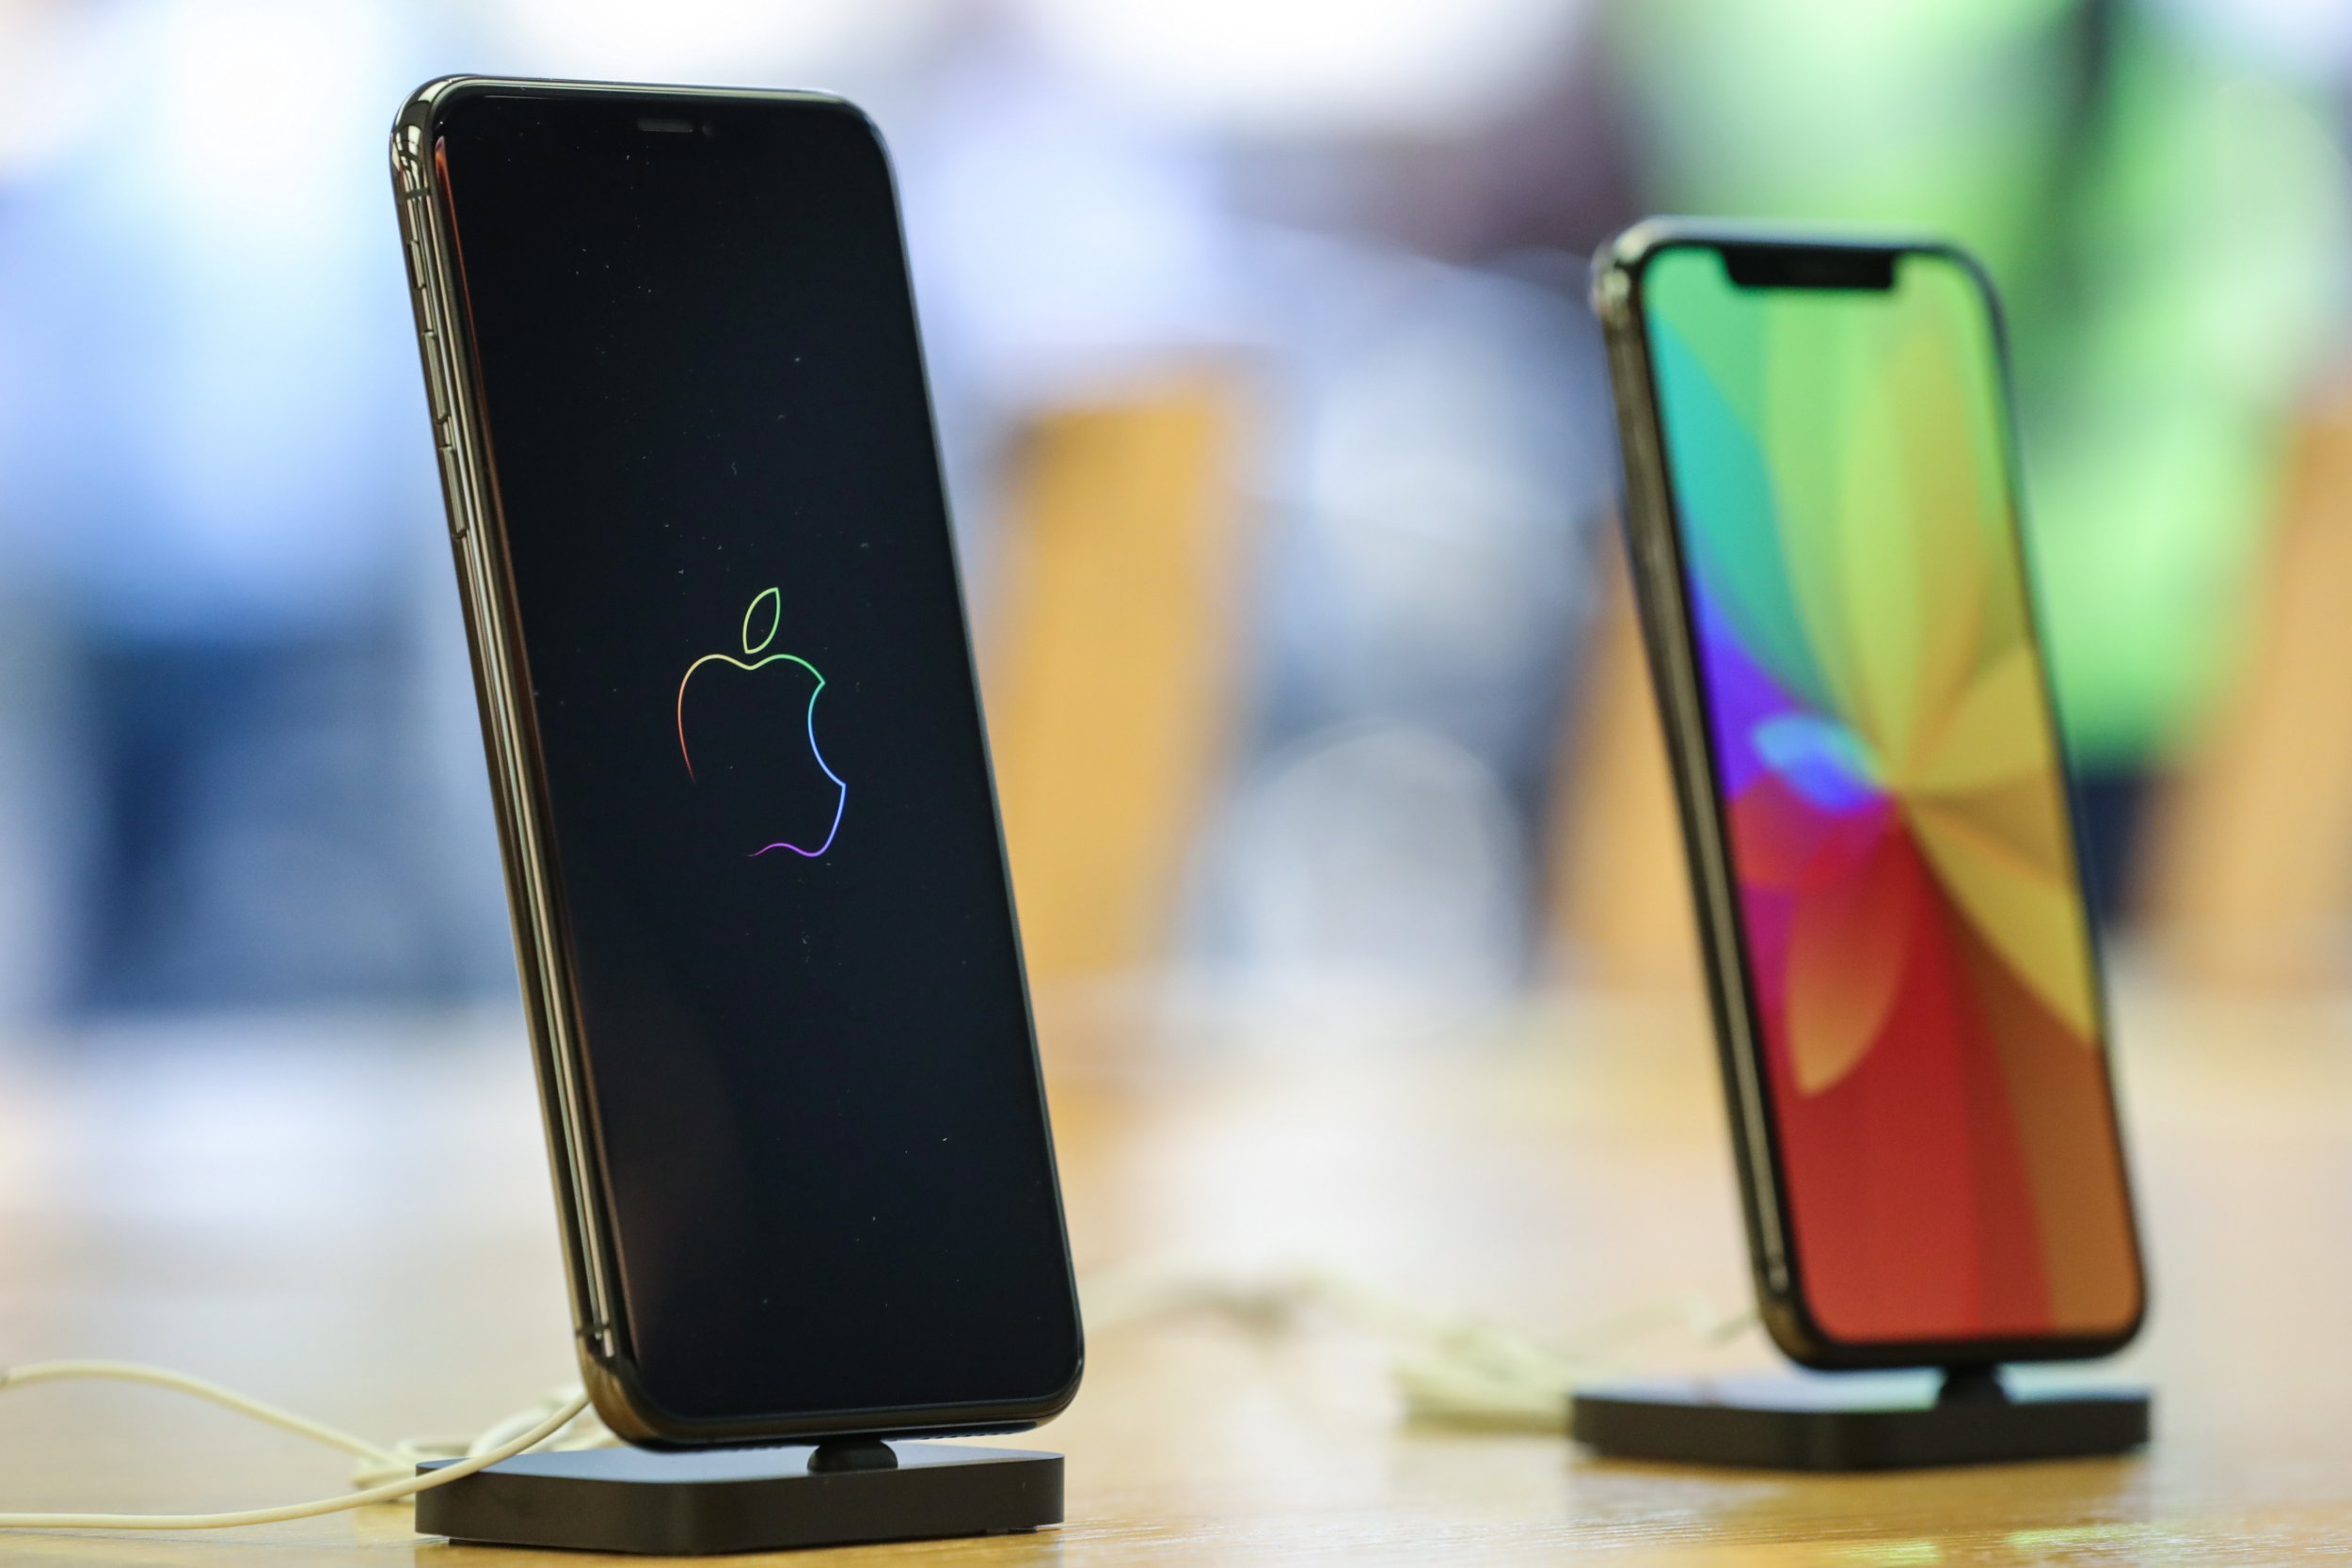 epa07036561 The new iPhone Xs Max and Xs models are displayed during a launch of new products at an Apple Store in Frankfurt Main, Germany, 21 September 2018. The iPhone Xs Max, iPhone Xs and Apple Watch Series 4 went on sale on 21 September in Germany. EPA/ARMANDO BABANI